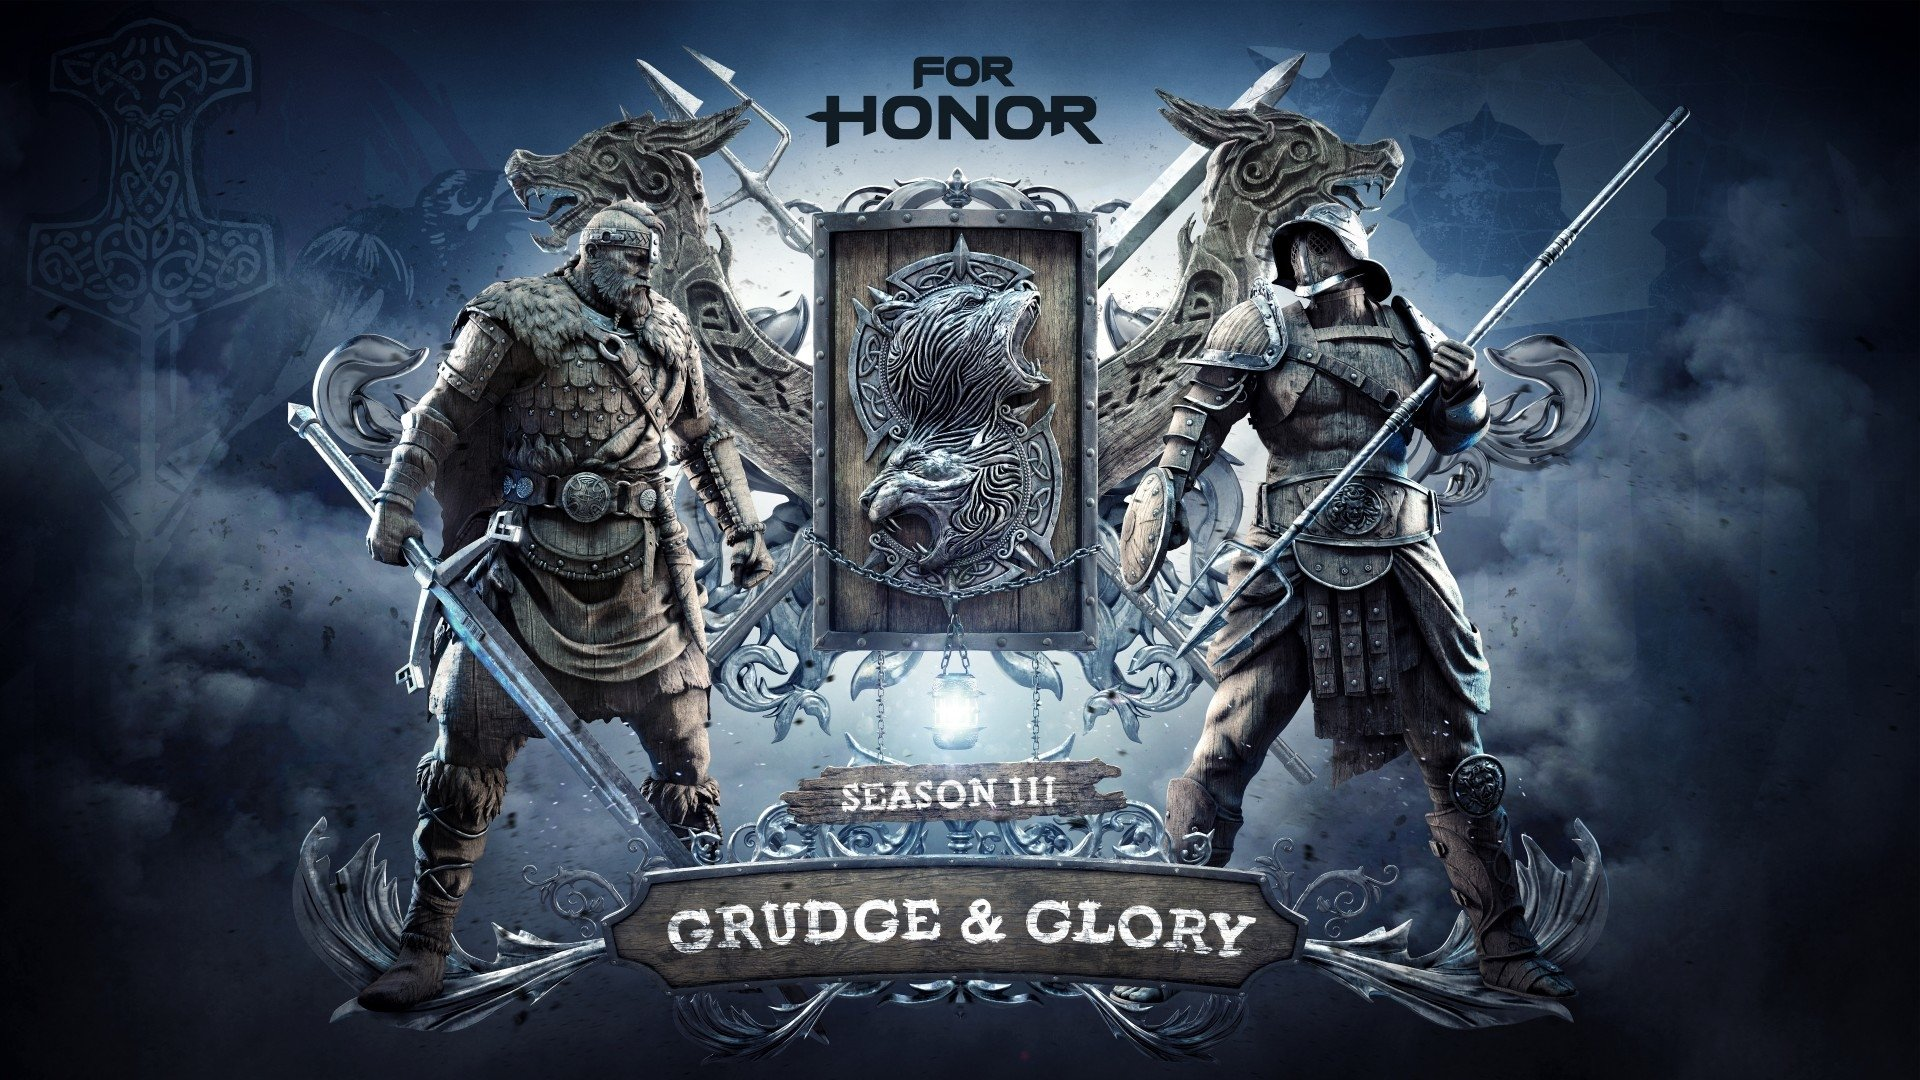 For Honor Hd Wallpaper Background Image 1920x1080 Id865216